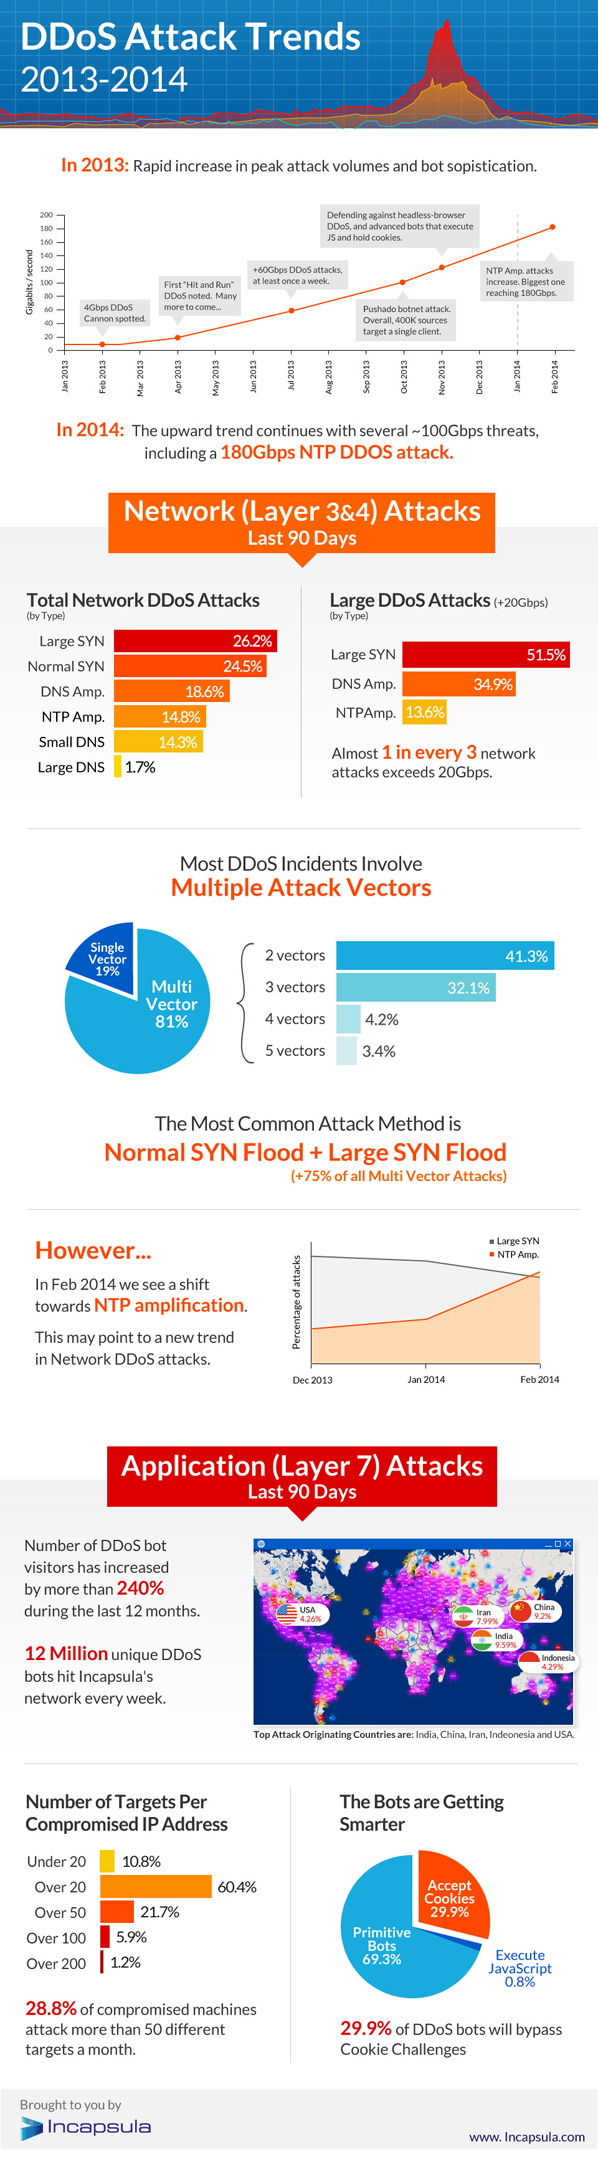 DDoS Attack Trends 2013-2014 Infographic